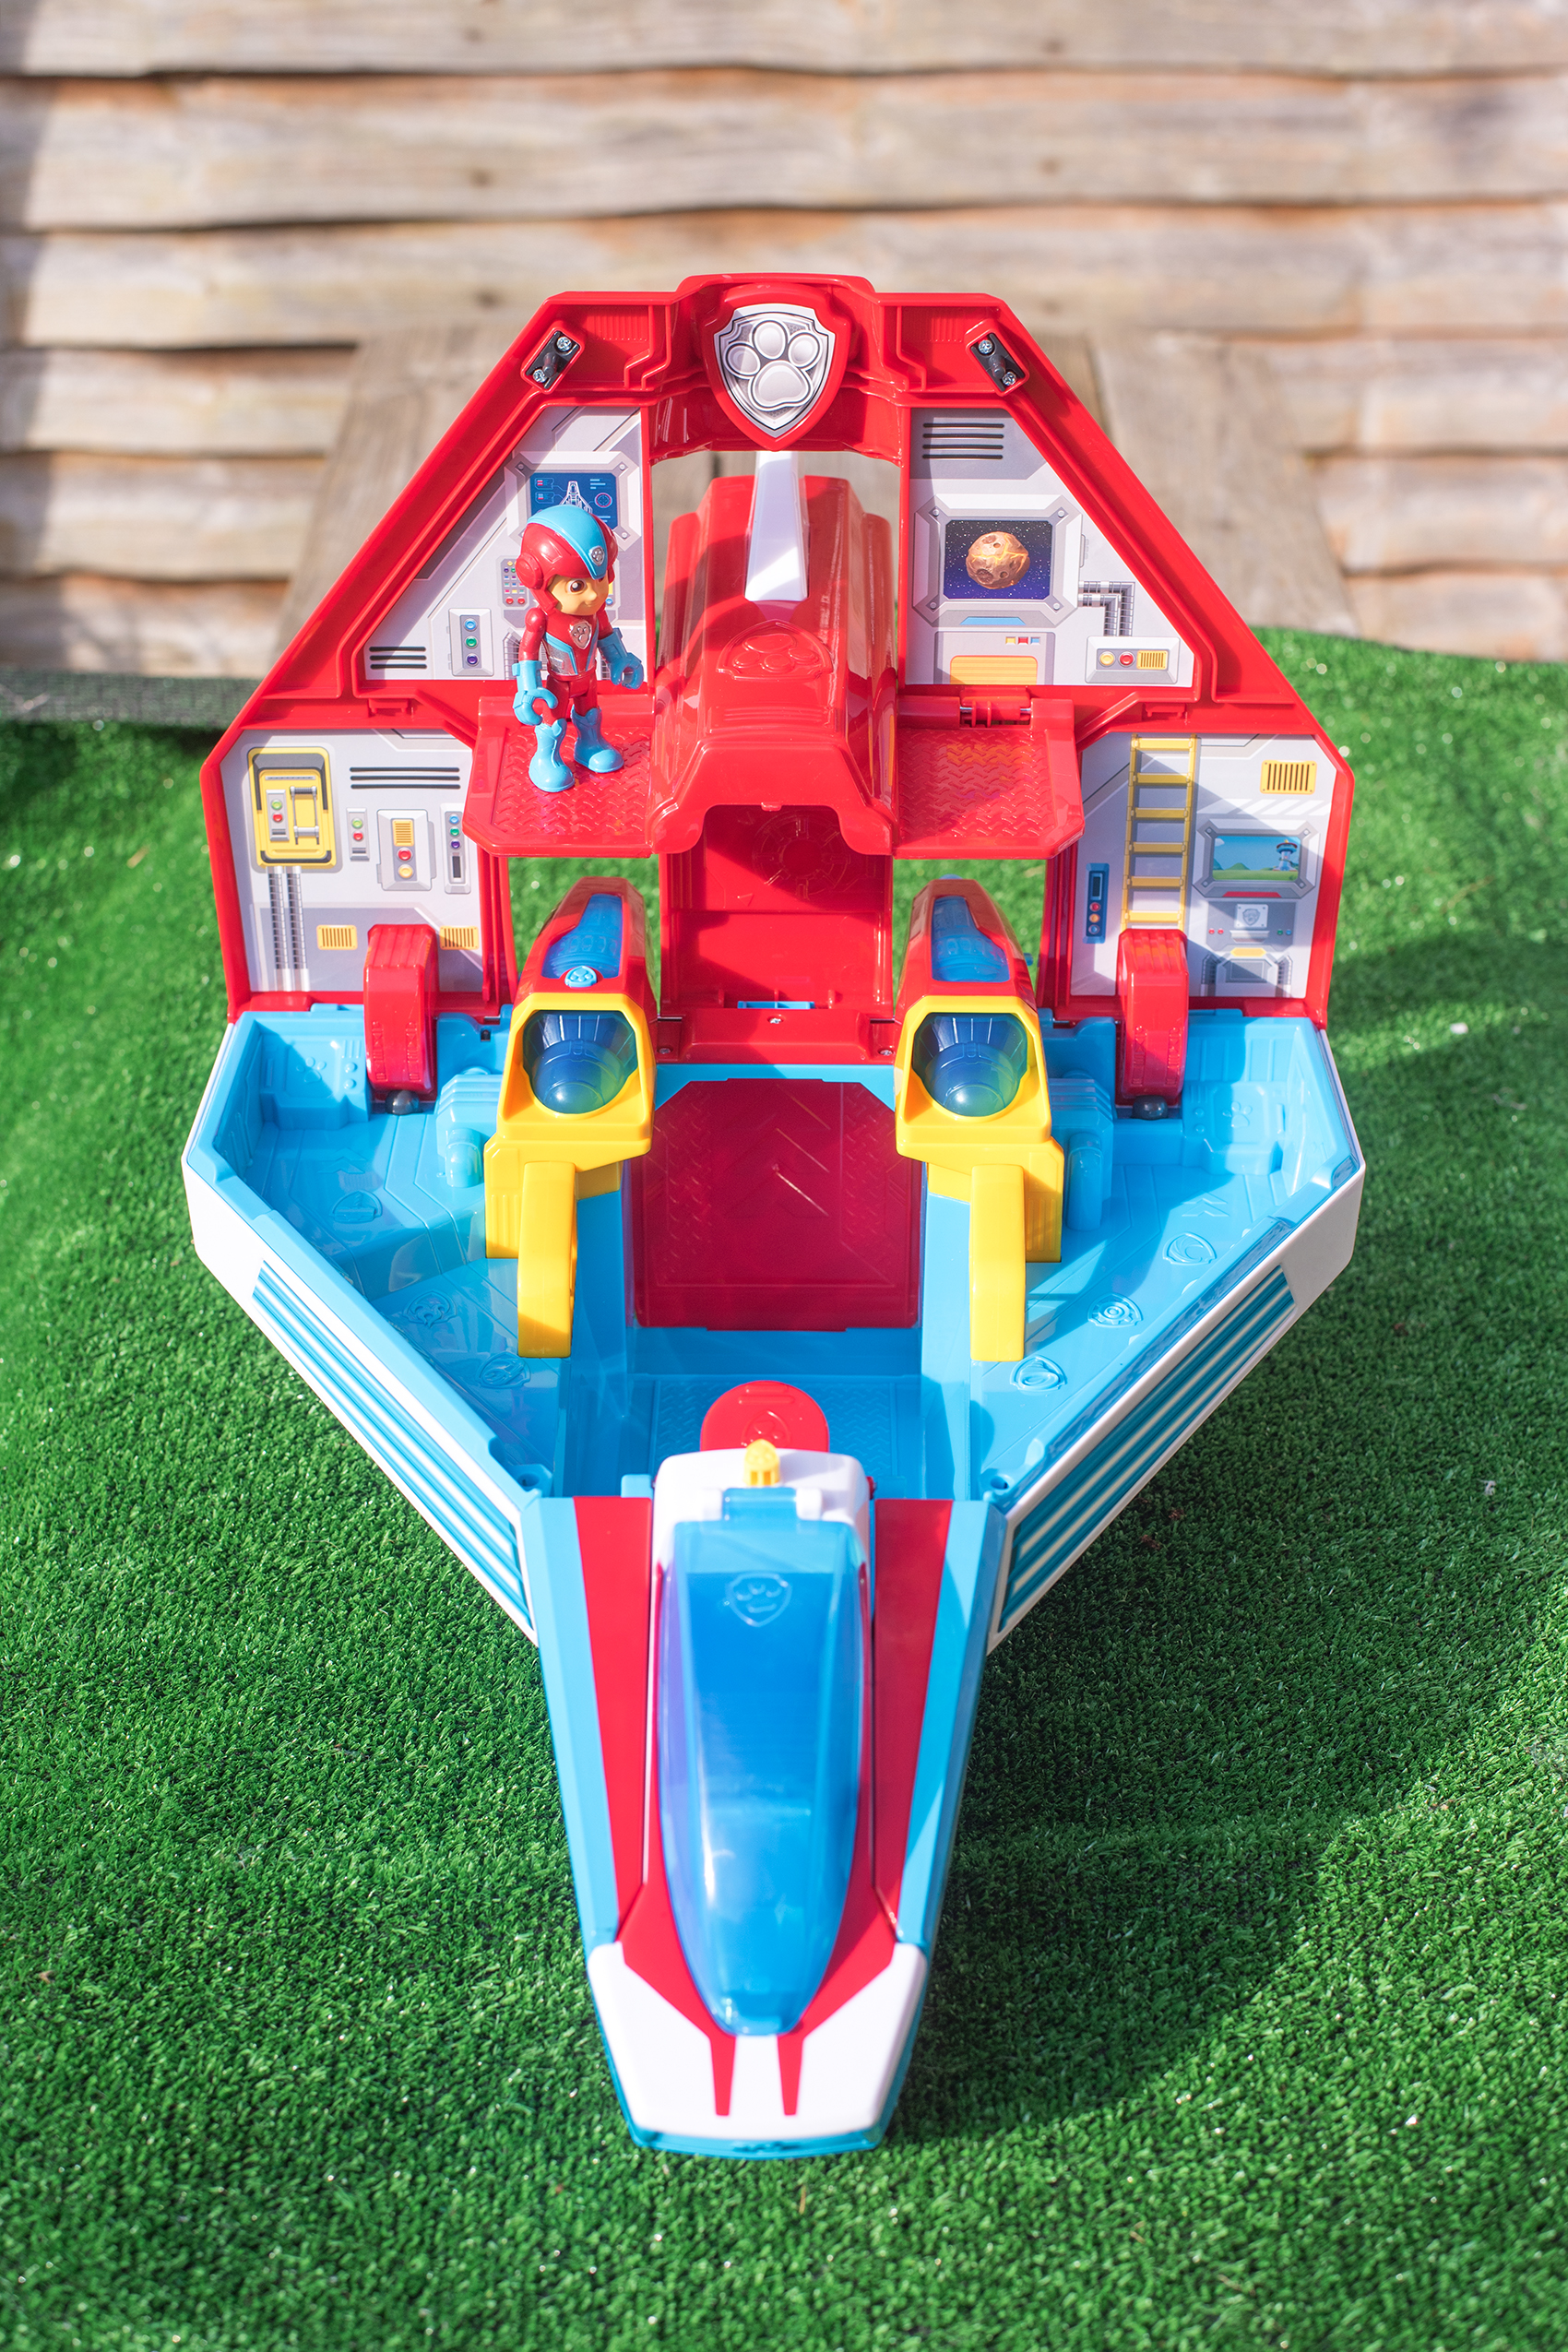 PAW PATROL MIGHTY JET SUPER PAWS COMMAND CENTRE and GIVEAWAY